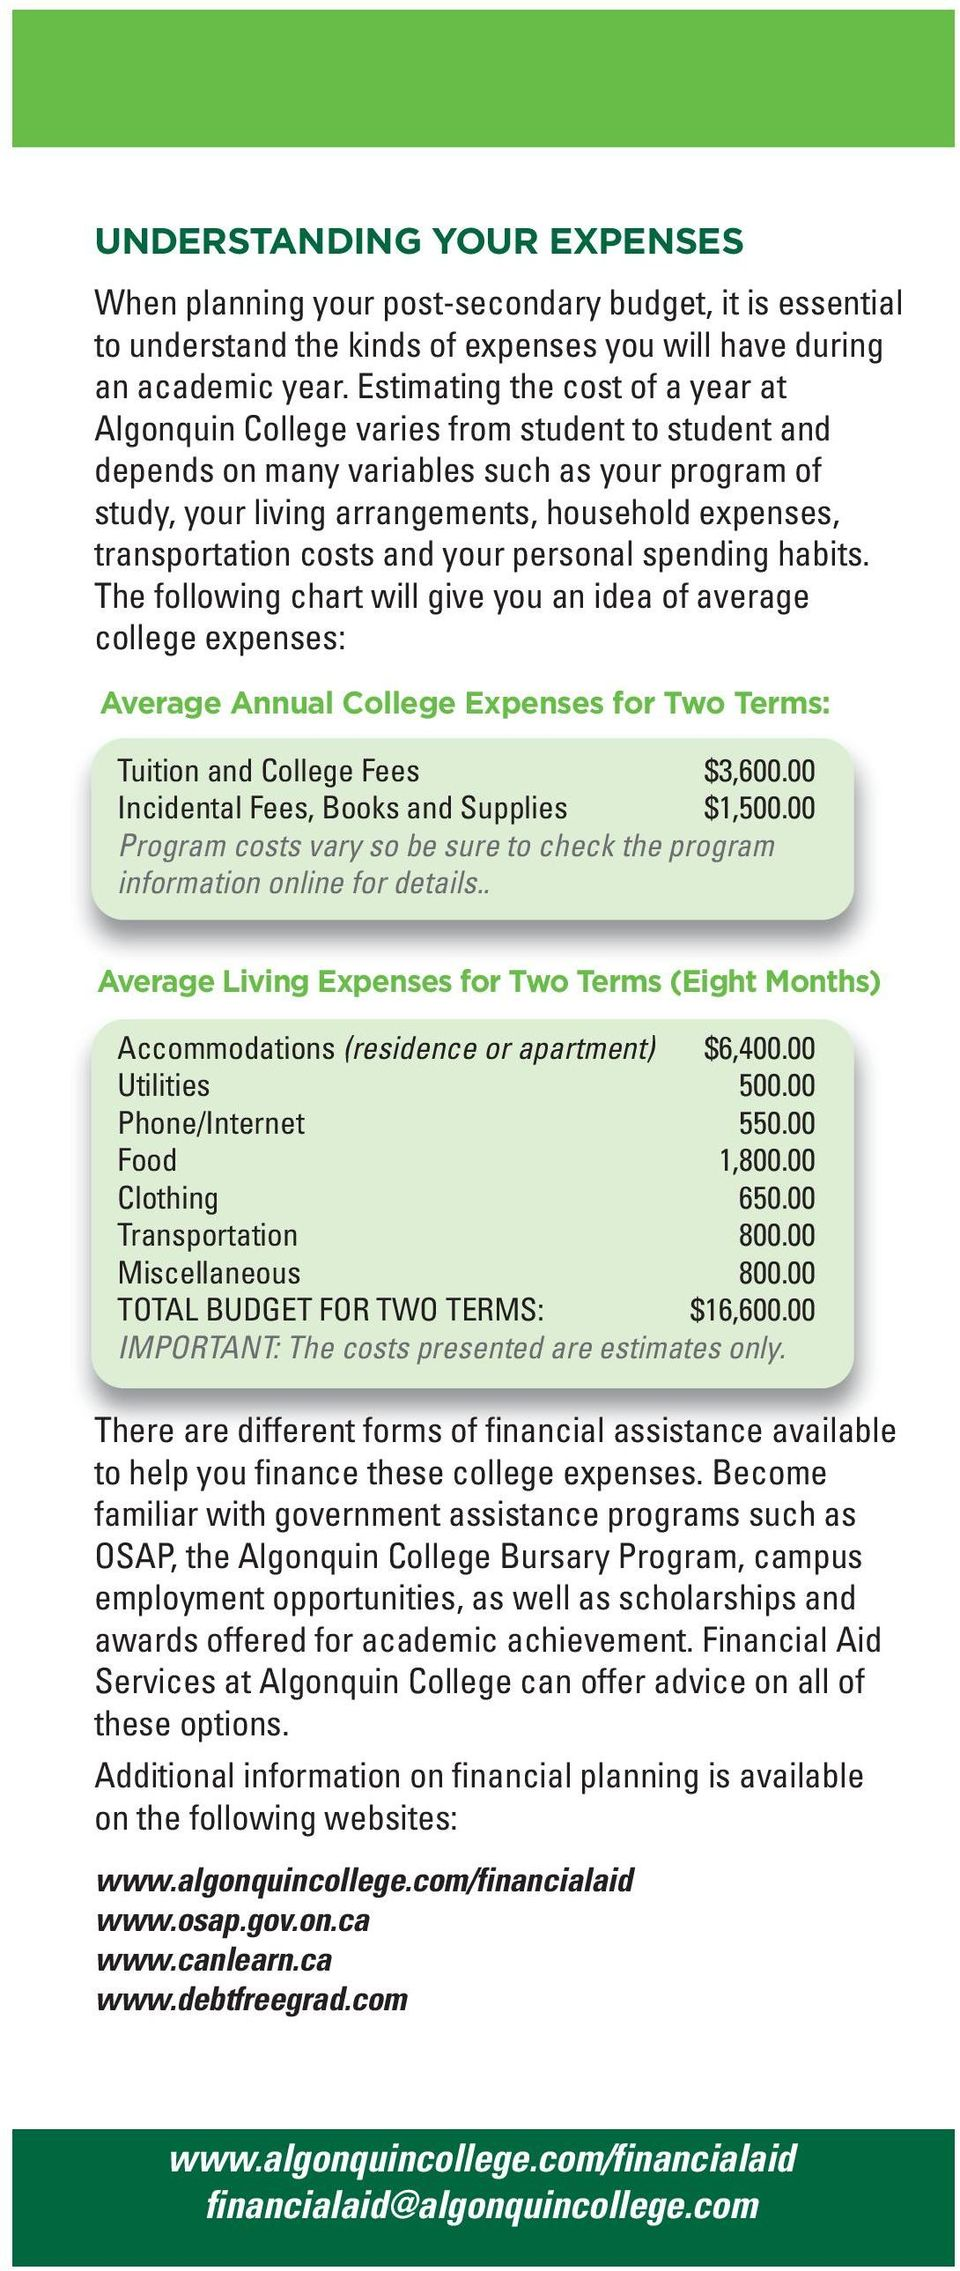 transportation costs and your personal spending habits.